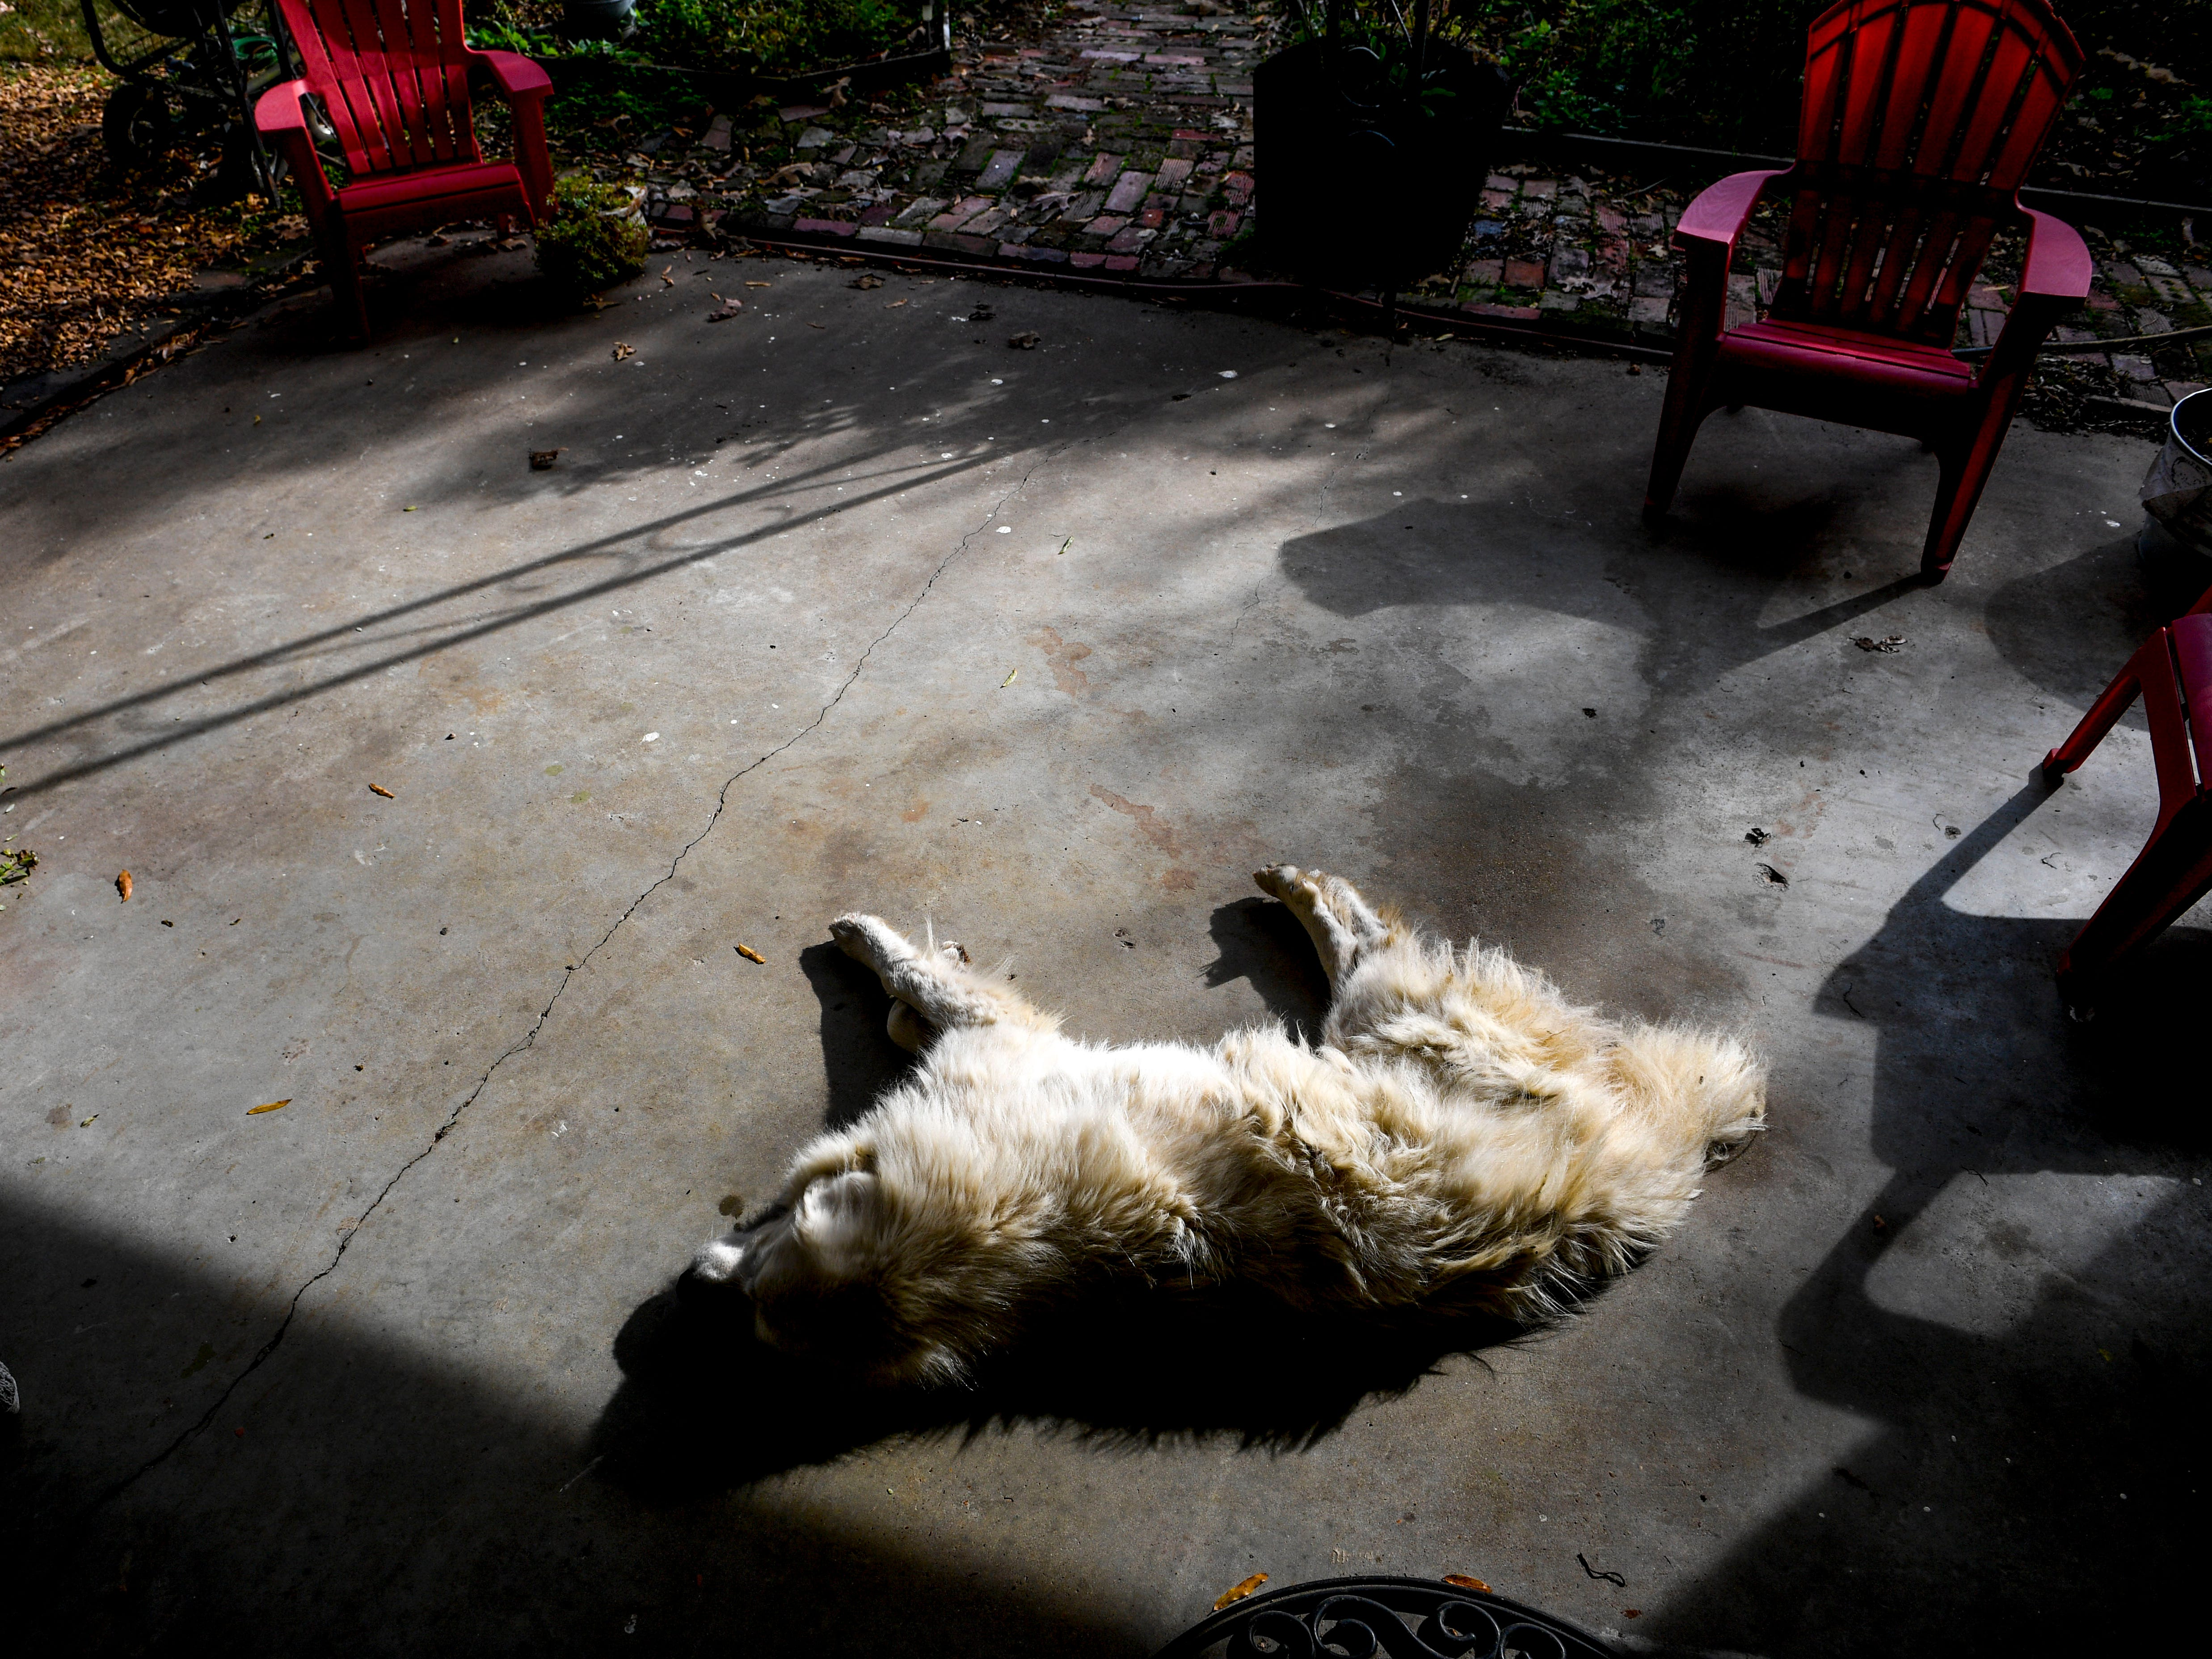 Dusty, a Great Pyrenees, lays out to bask in the sun rays at the front porch of the Pitoni's guest house at Stillwaters Farm in Henderson, Tenn., on Monday, Nov. 5, 2018.